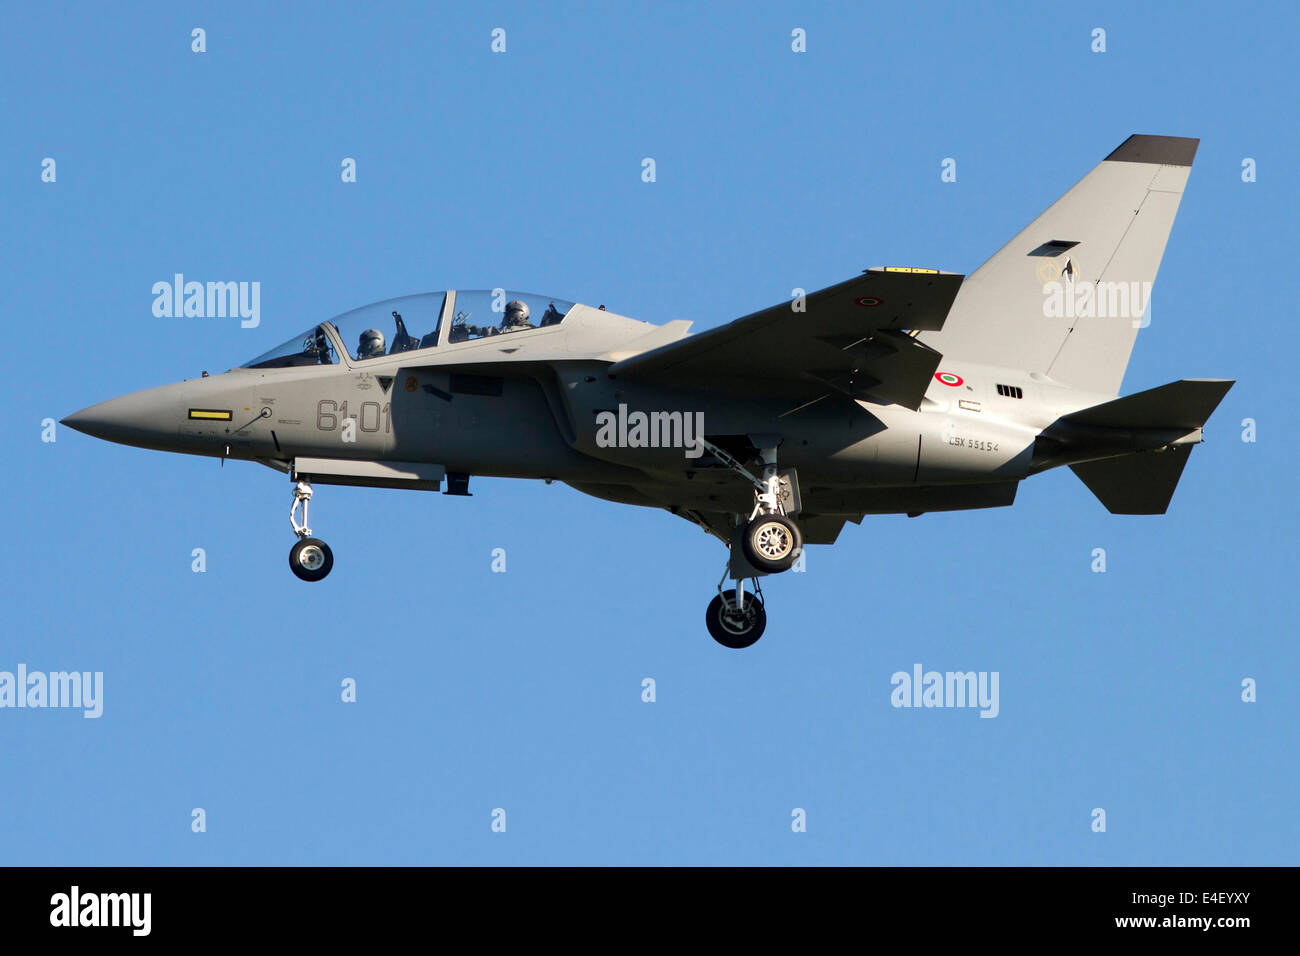 An Alenia Aermacchi M-346 Master trainer aircraft of the Italian Air Force in flight over Turin Airport, Italy. - Stock Image